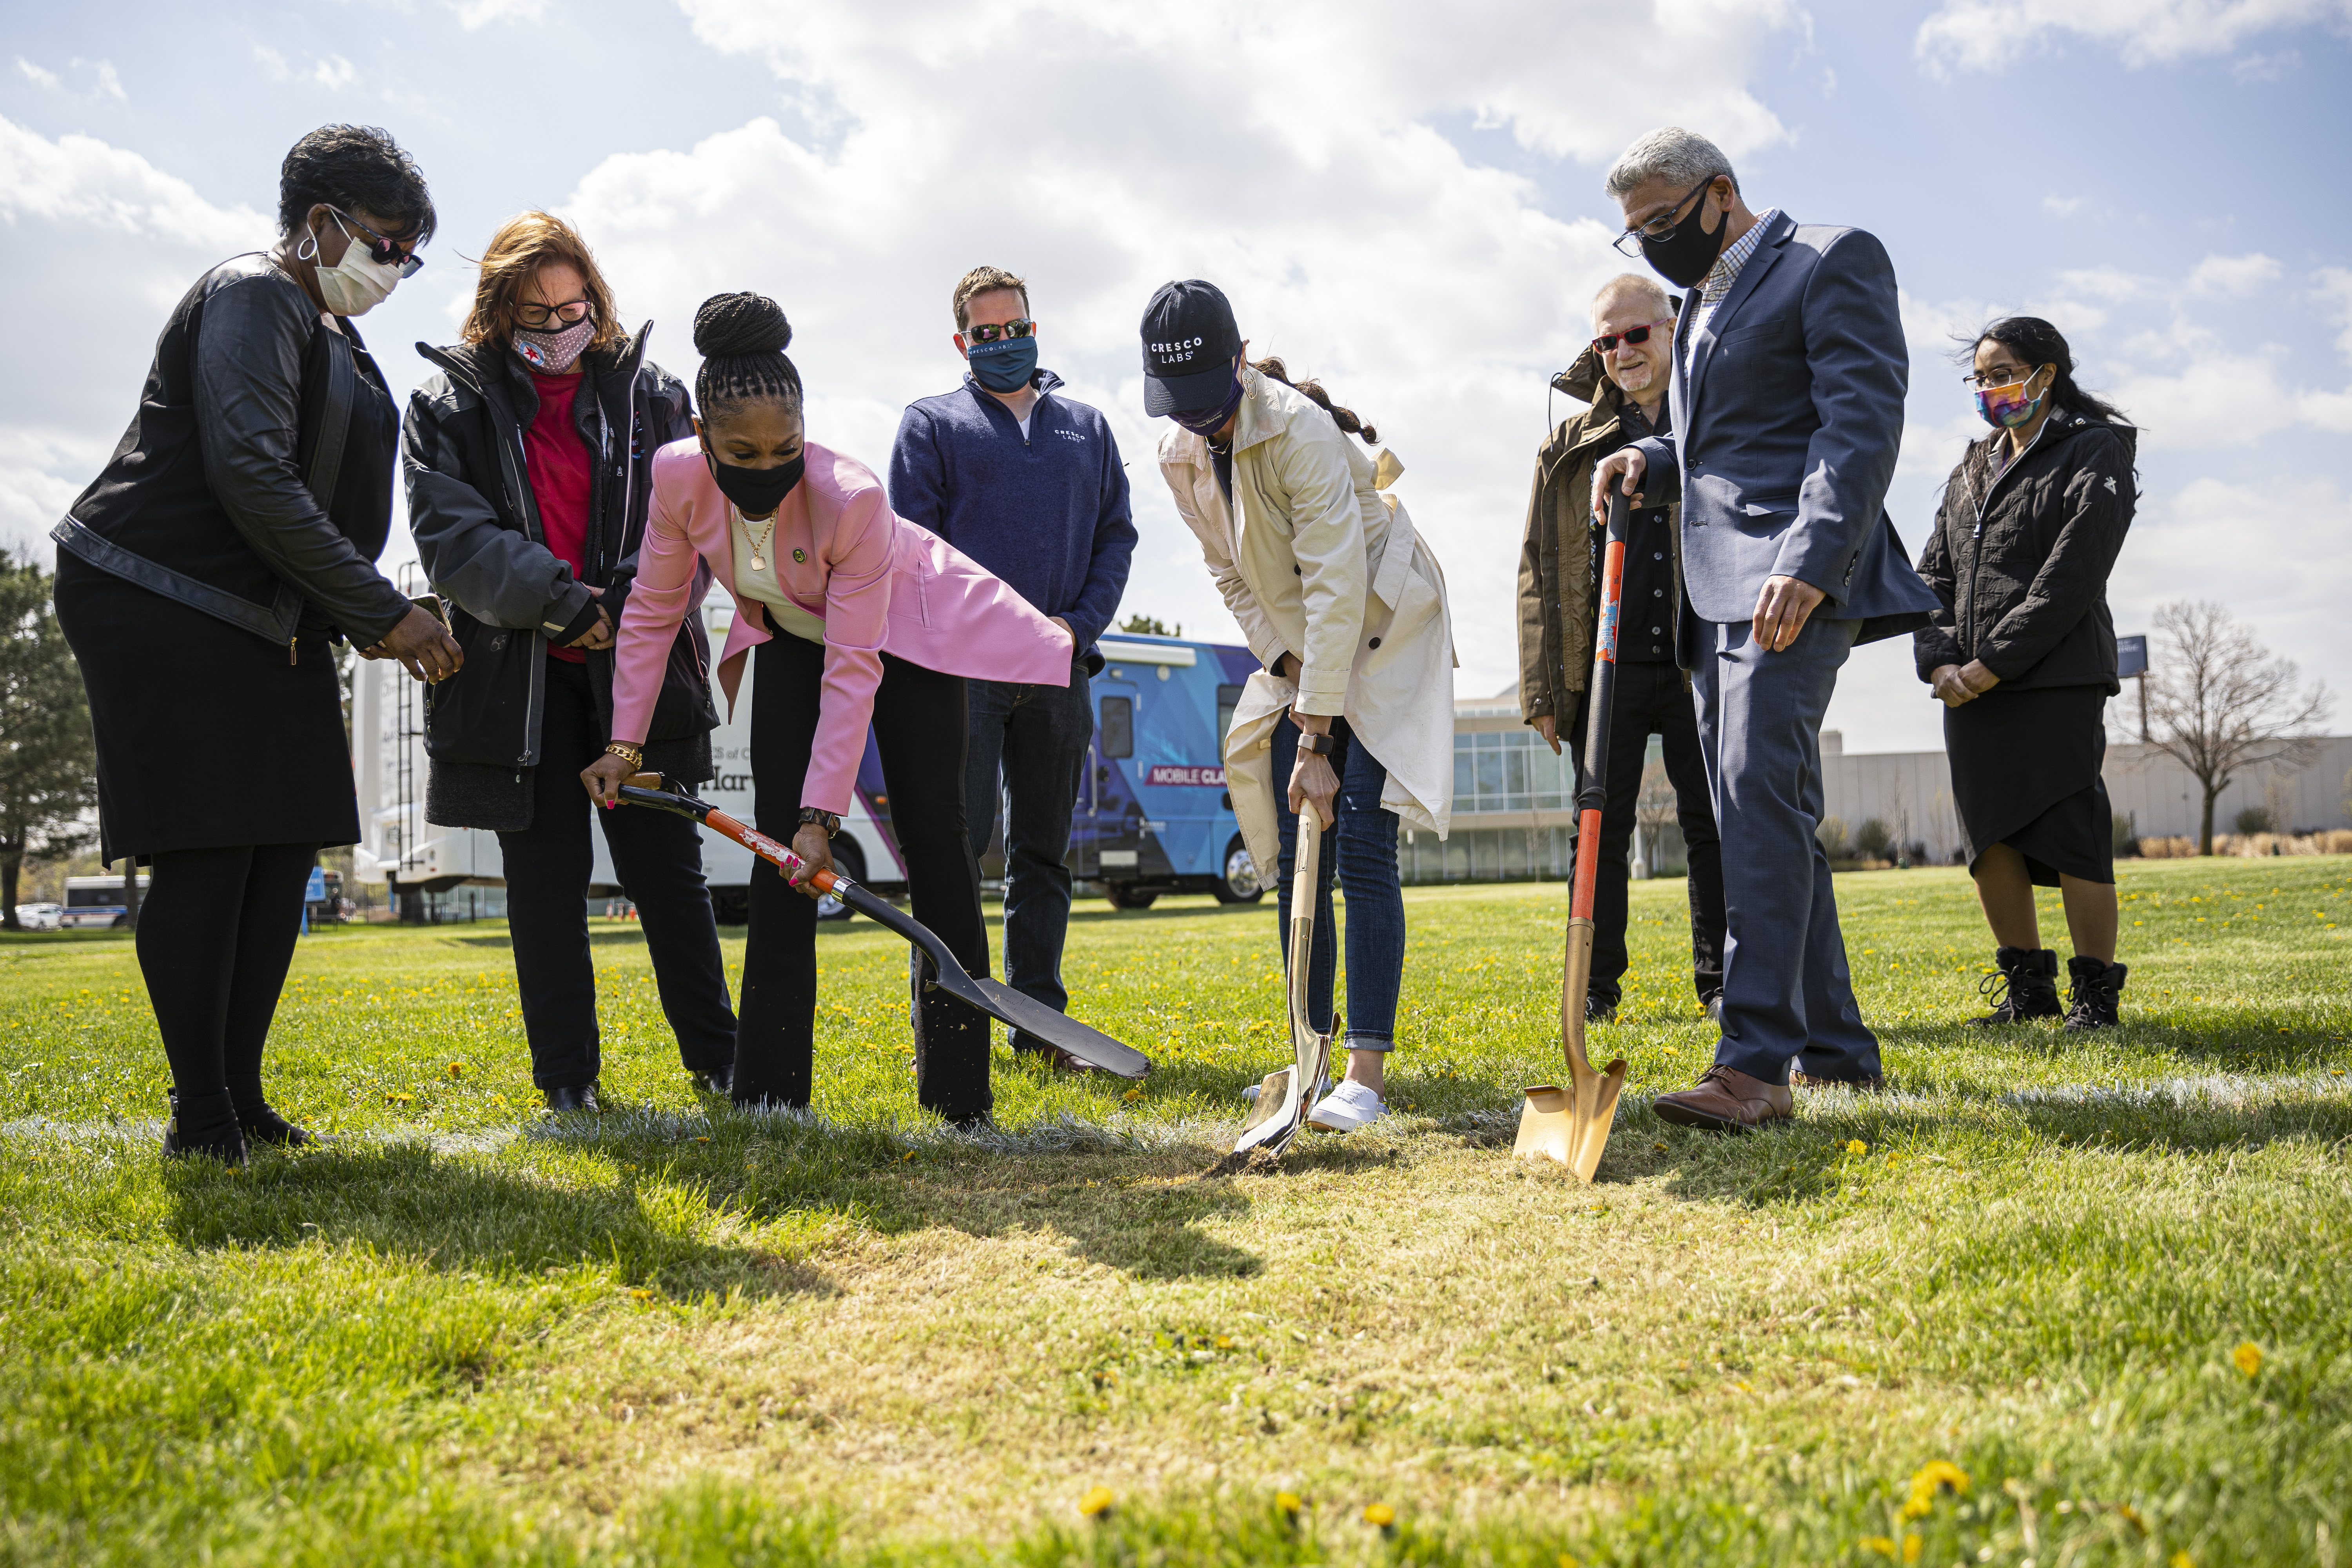 Faculty and local leaders break ground on Thursday, April 22, 2021 on the new location of the future hemp greenhouse at Olive-Harvey College for its cannabis education program.